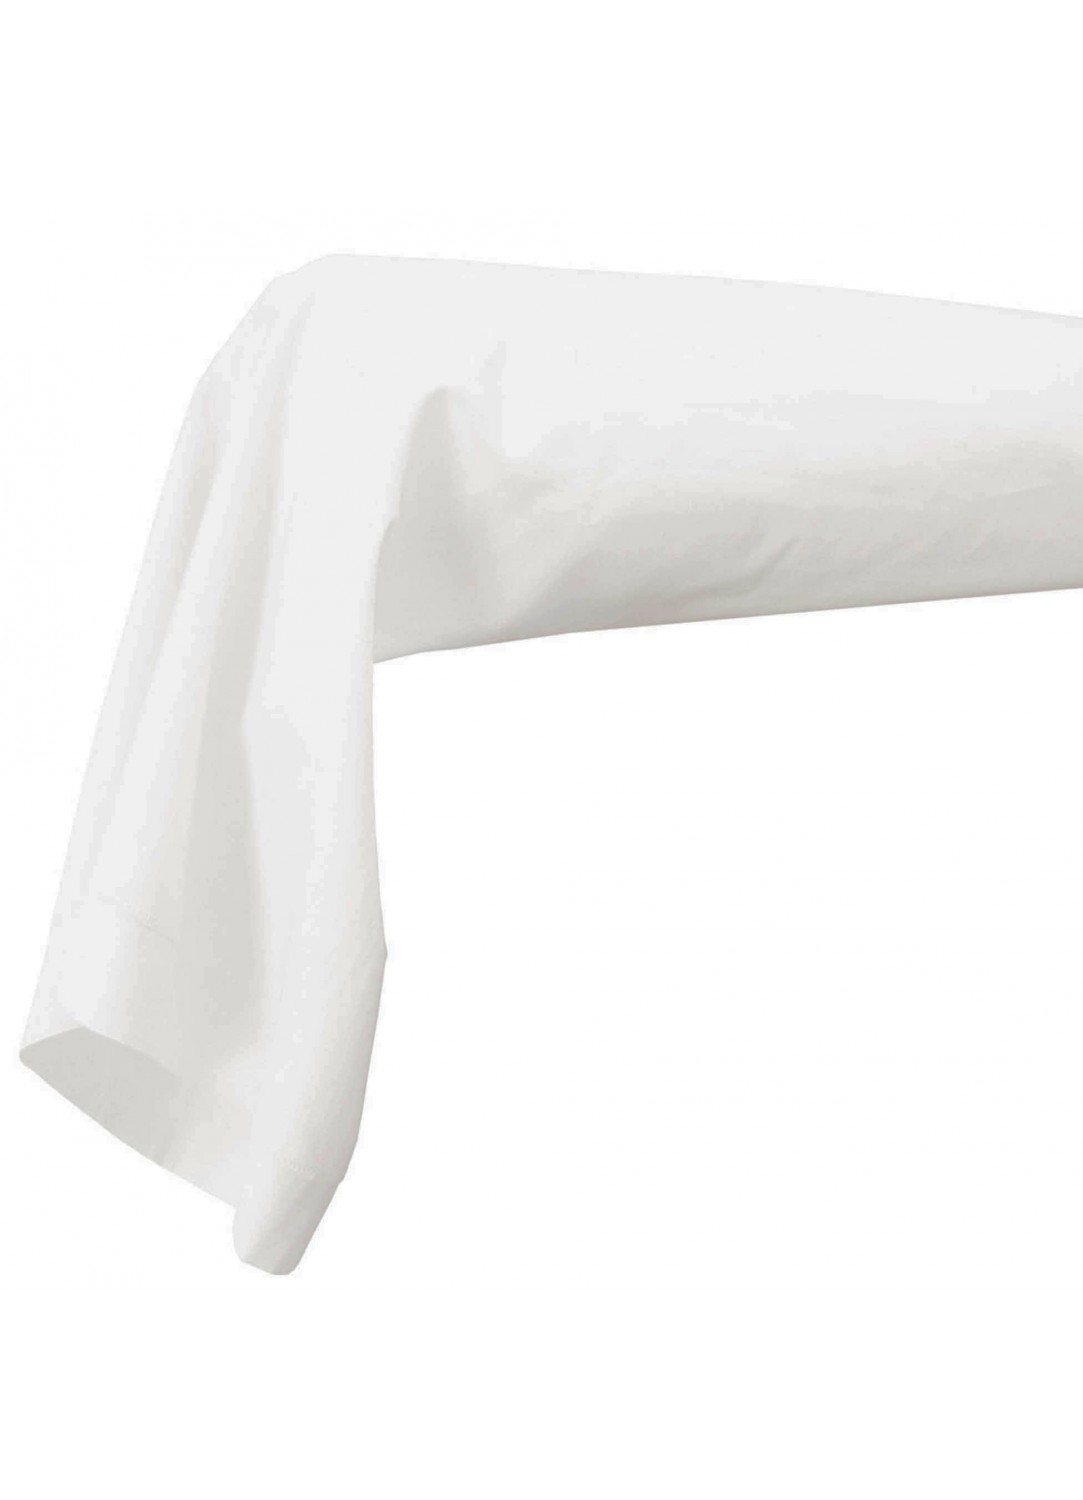 Housse de traversin percale 86 x 190 cm blanc for Housse de traversin